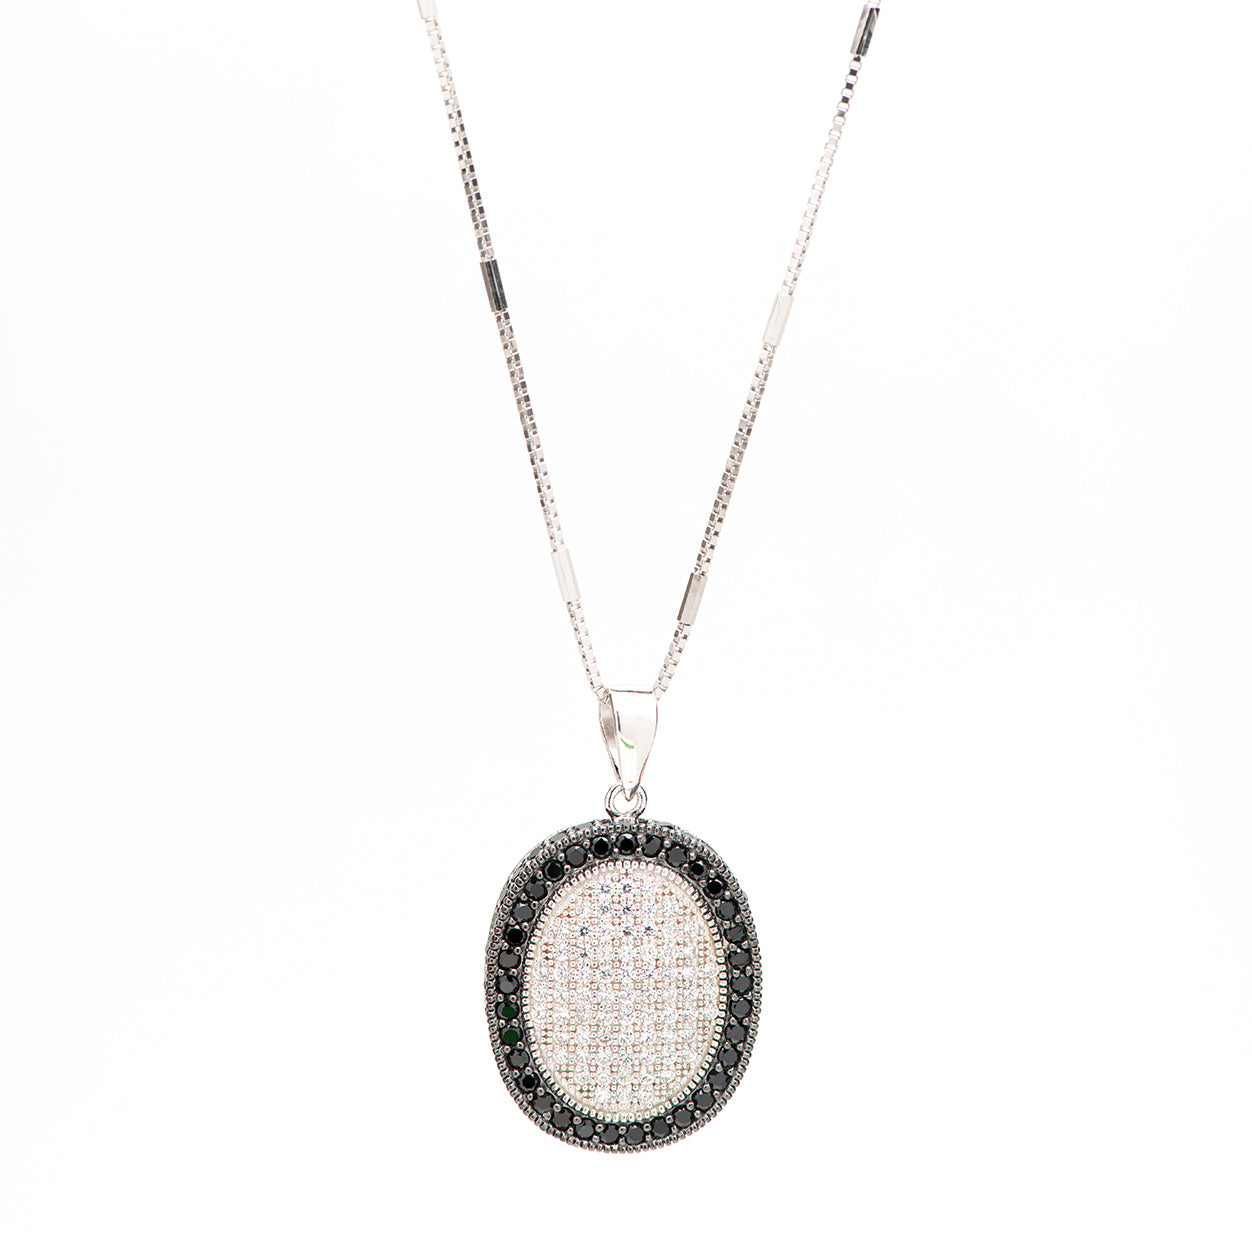 ARABELLA - sterling silver necklace with oval micropave CZ